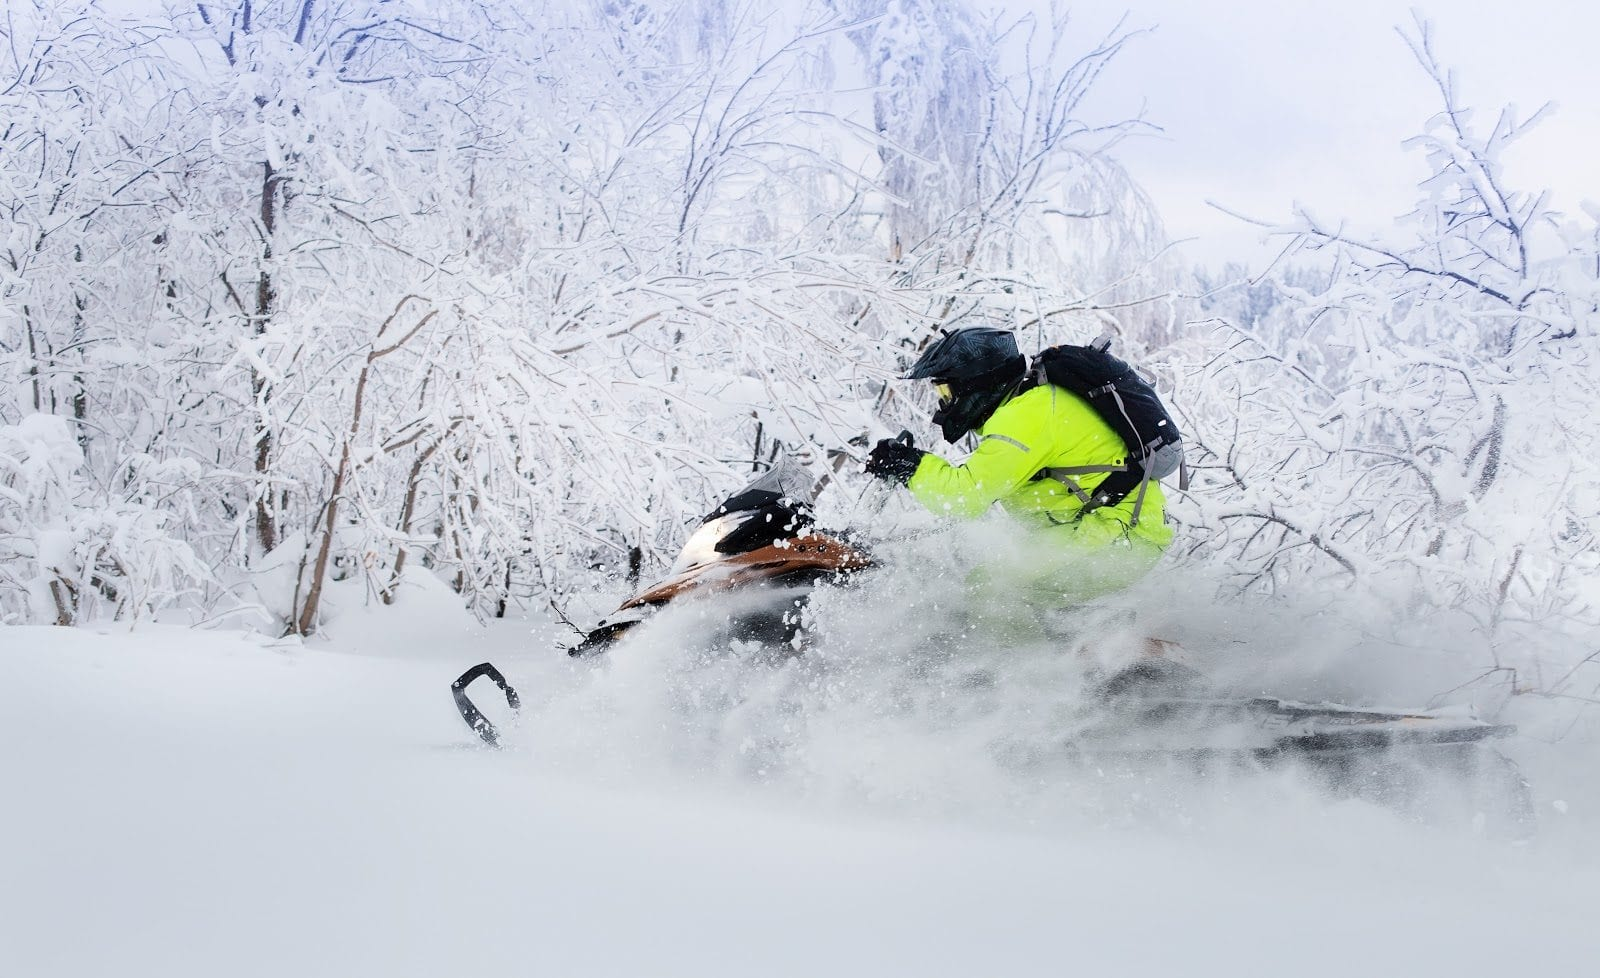 Snowmobile kicking up drifts of snow.